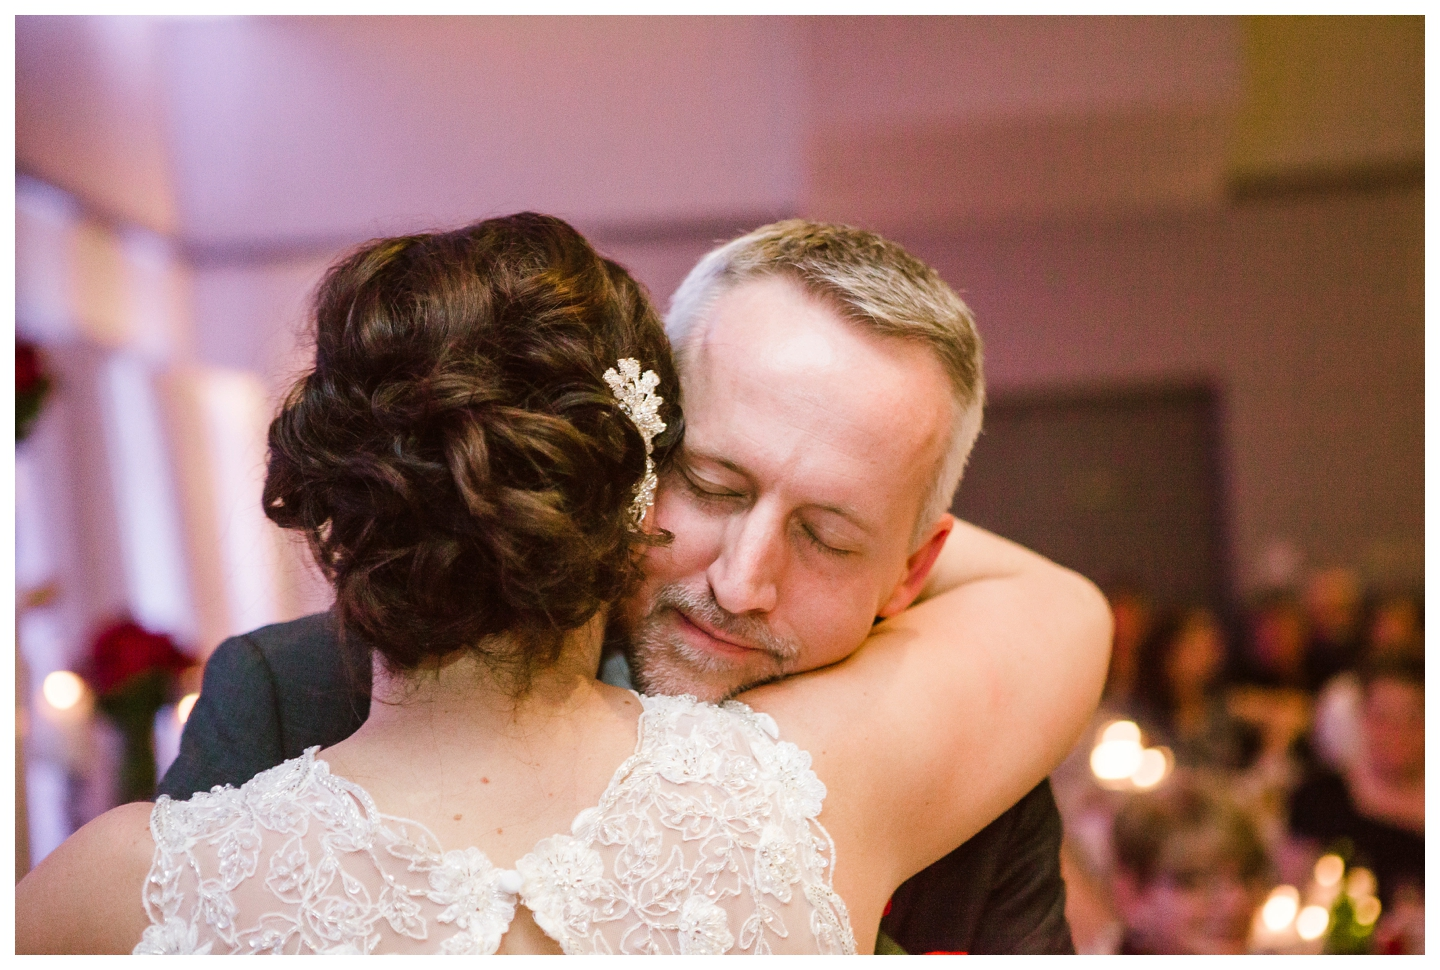 Bride and Groom hugging during wedding reception